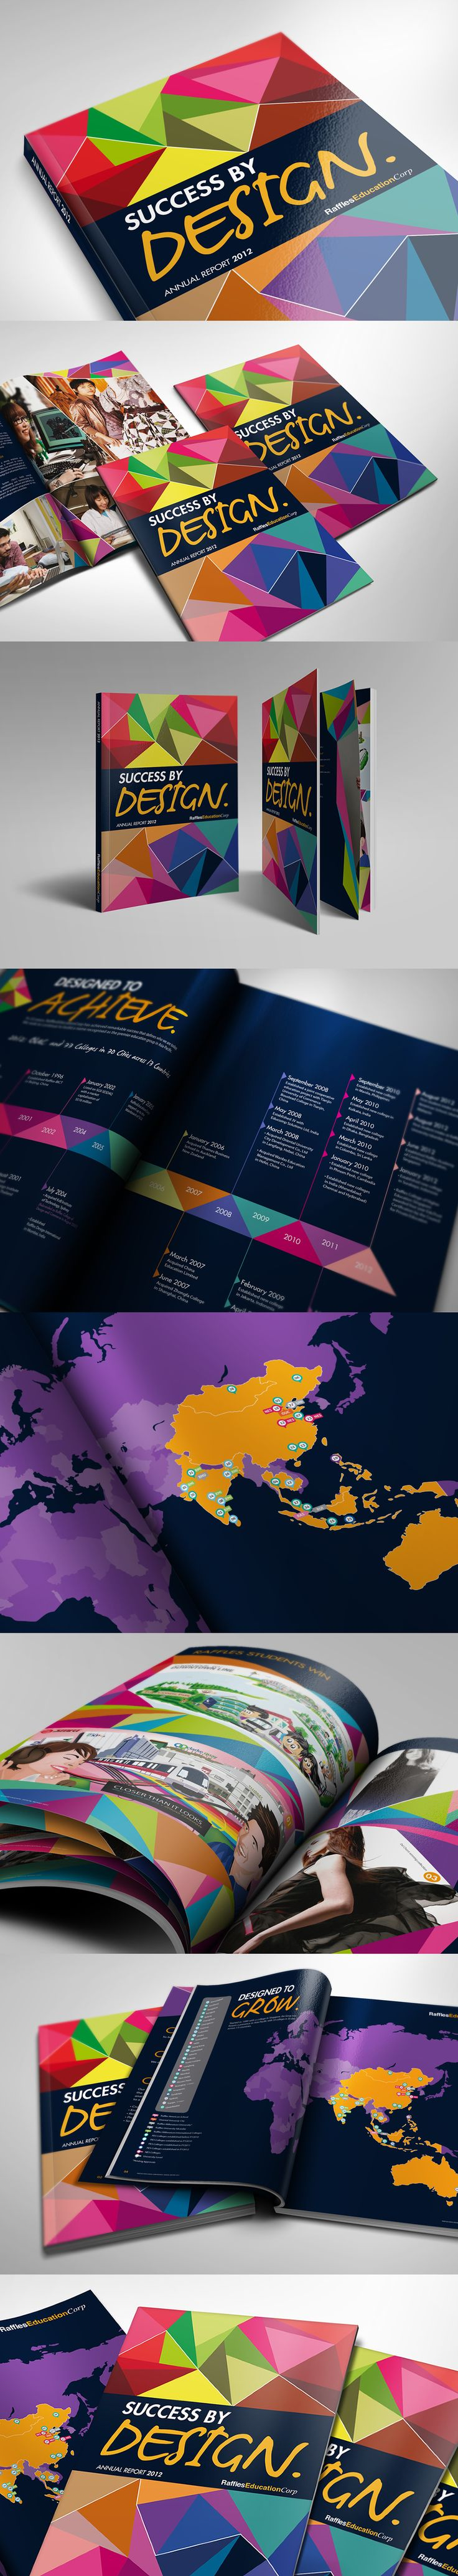 An eye-catching annual report design filled with quirky layouts. Colourful inside-out! #annualreport #print #brochure #report #colorful #color #cover #printmedia #layout #map #infographic #fashion #singapore #sg